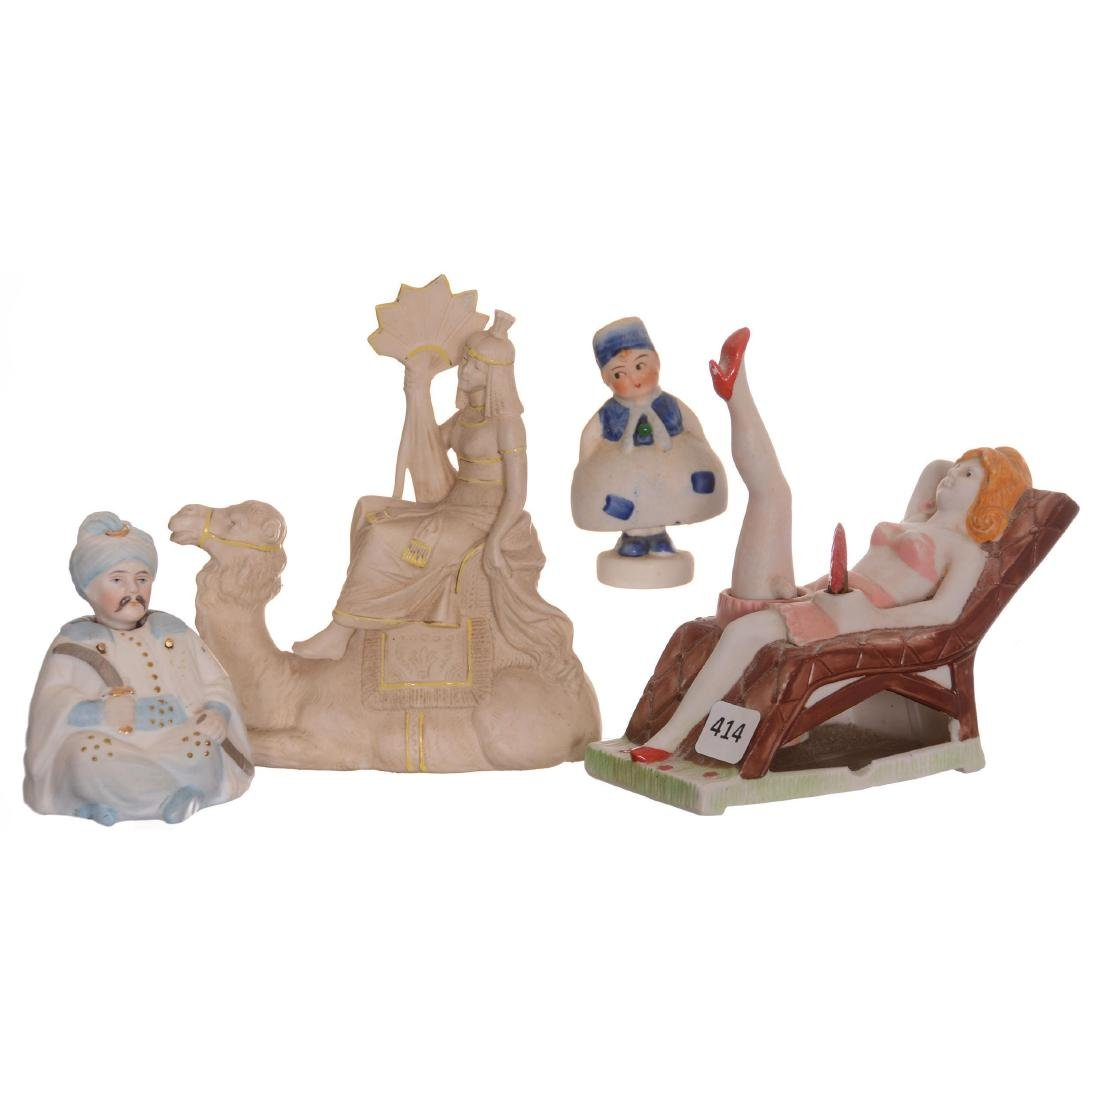 (4) Figural Bisque Items